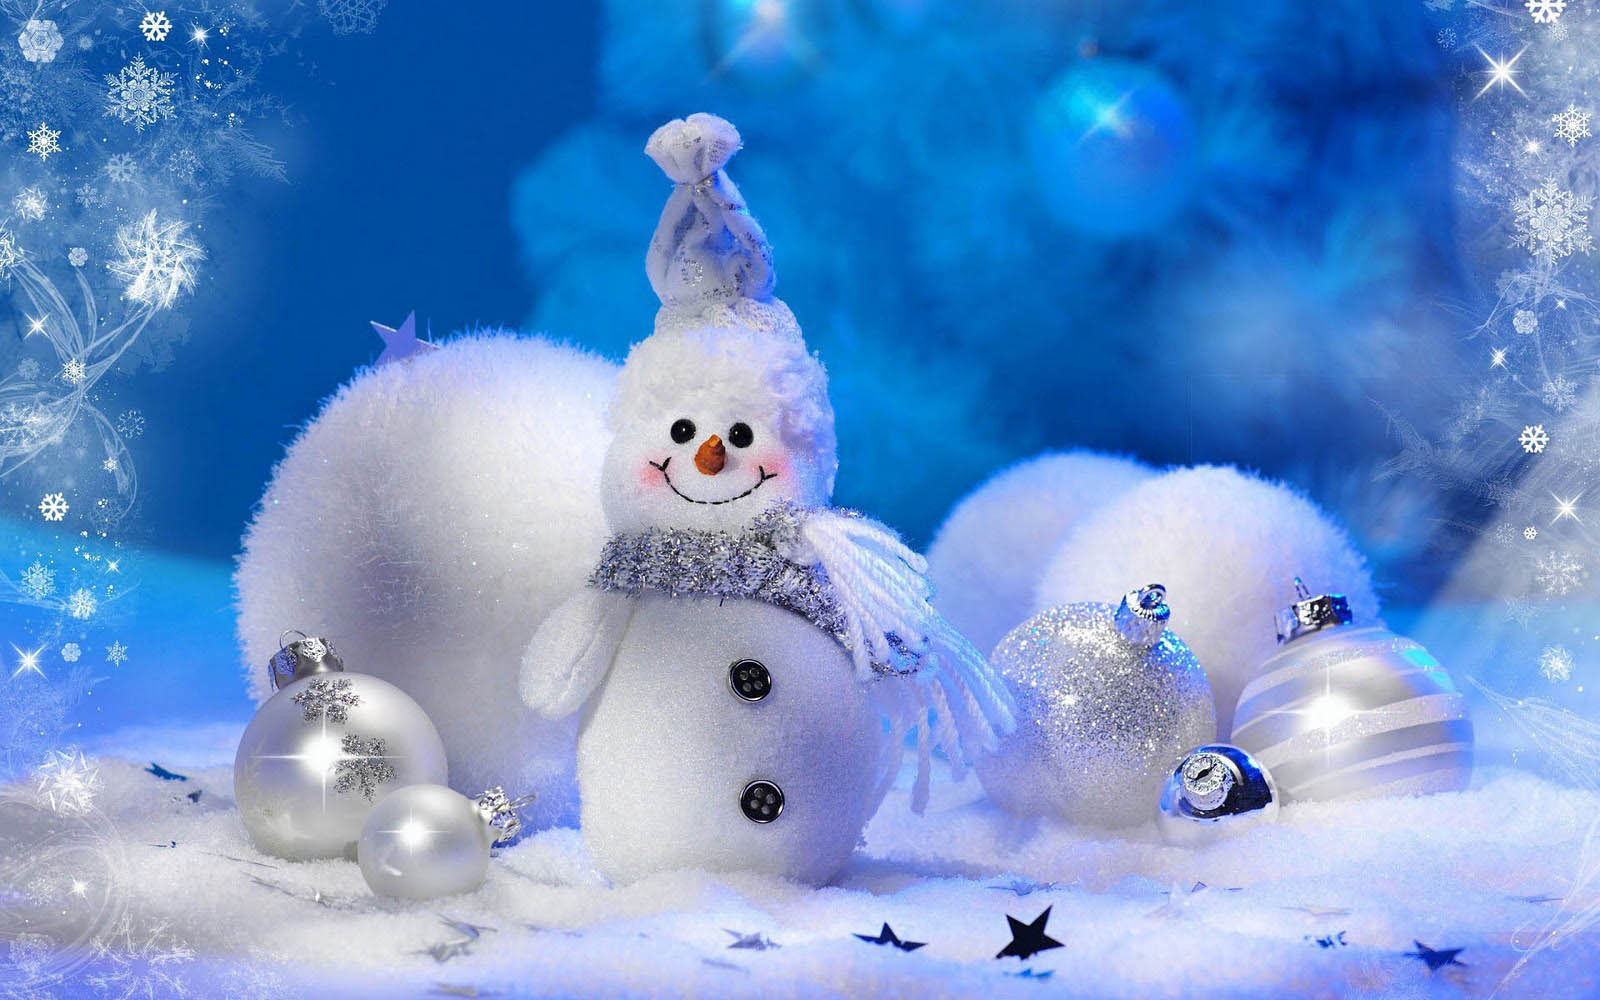 Snowman Wallpaper HD Desktop